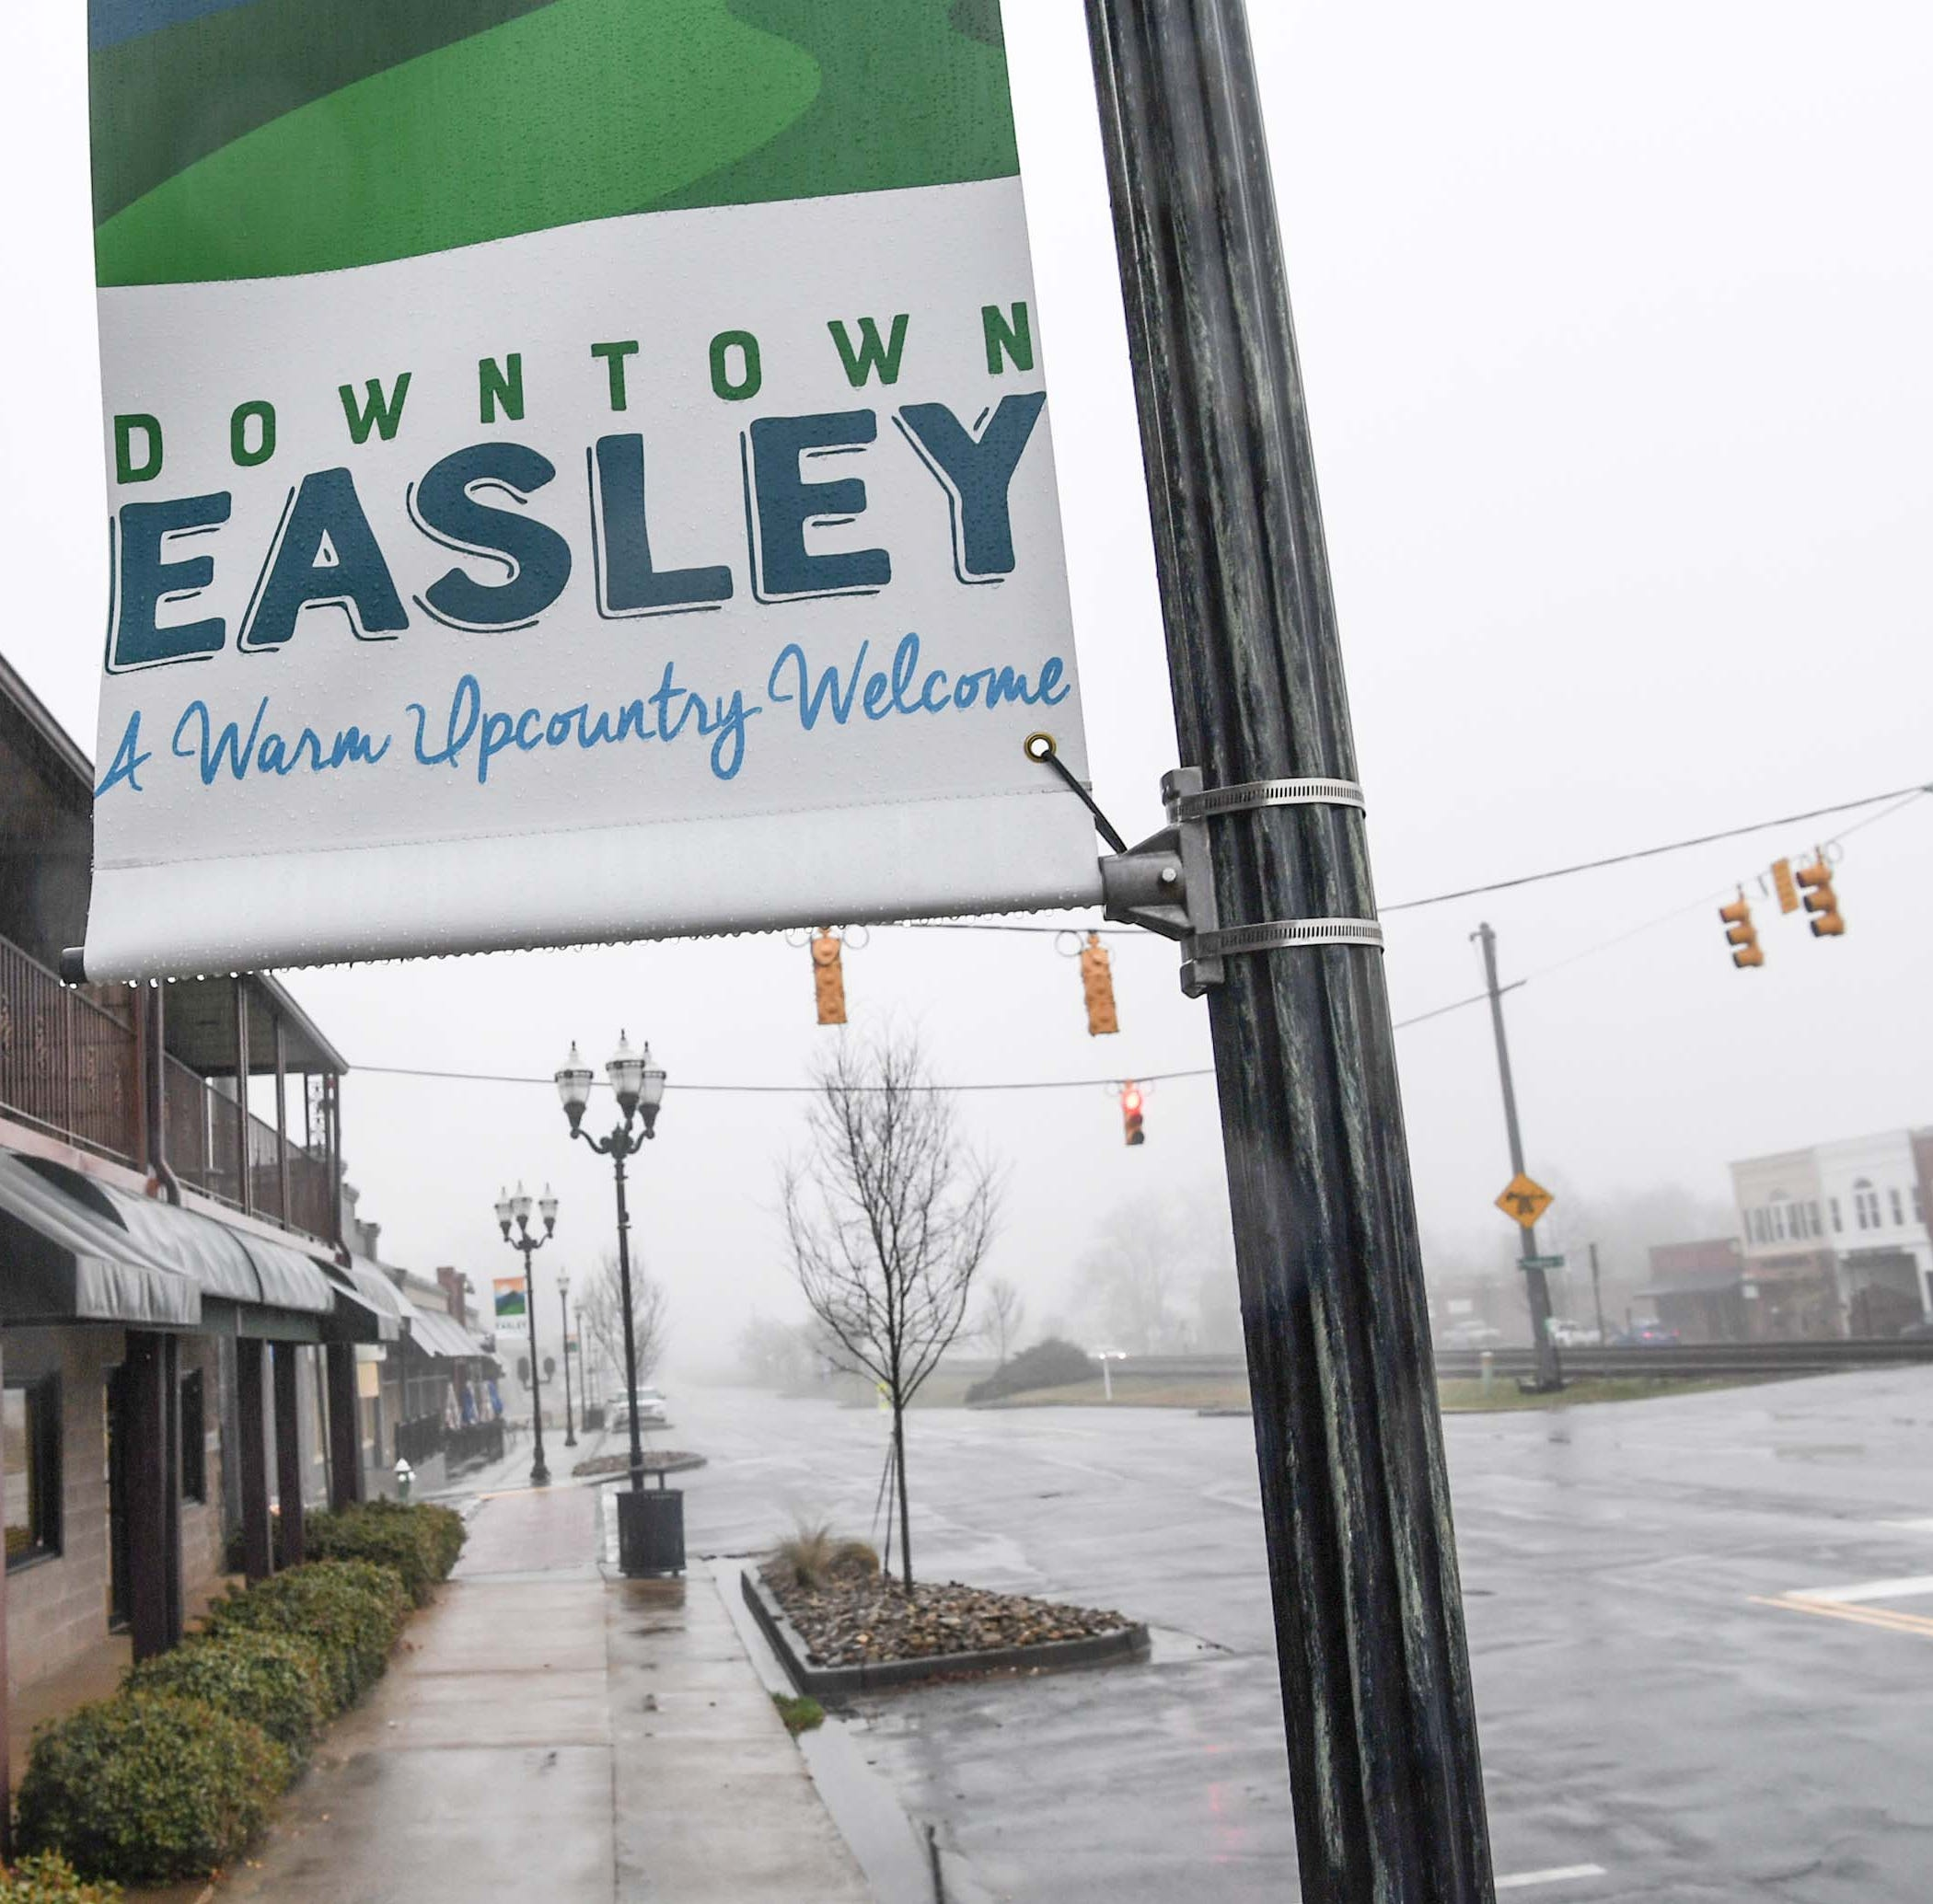 15 percent of downtown Easley could be given away as city seeks $50 million in development